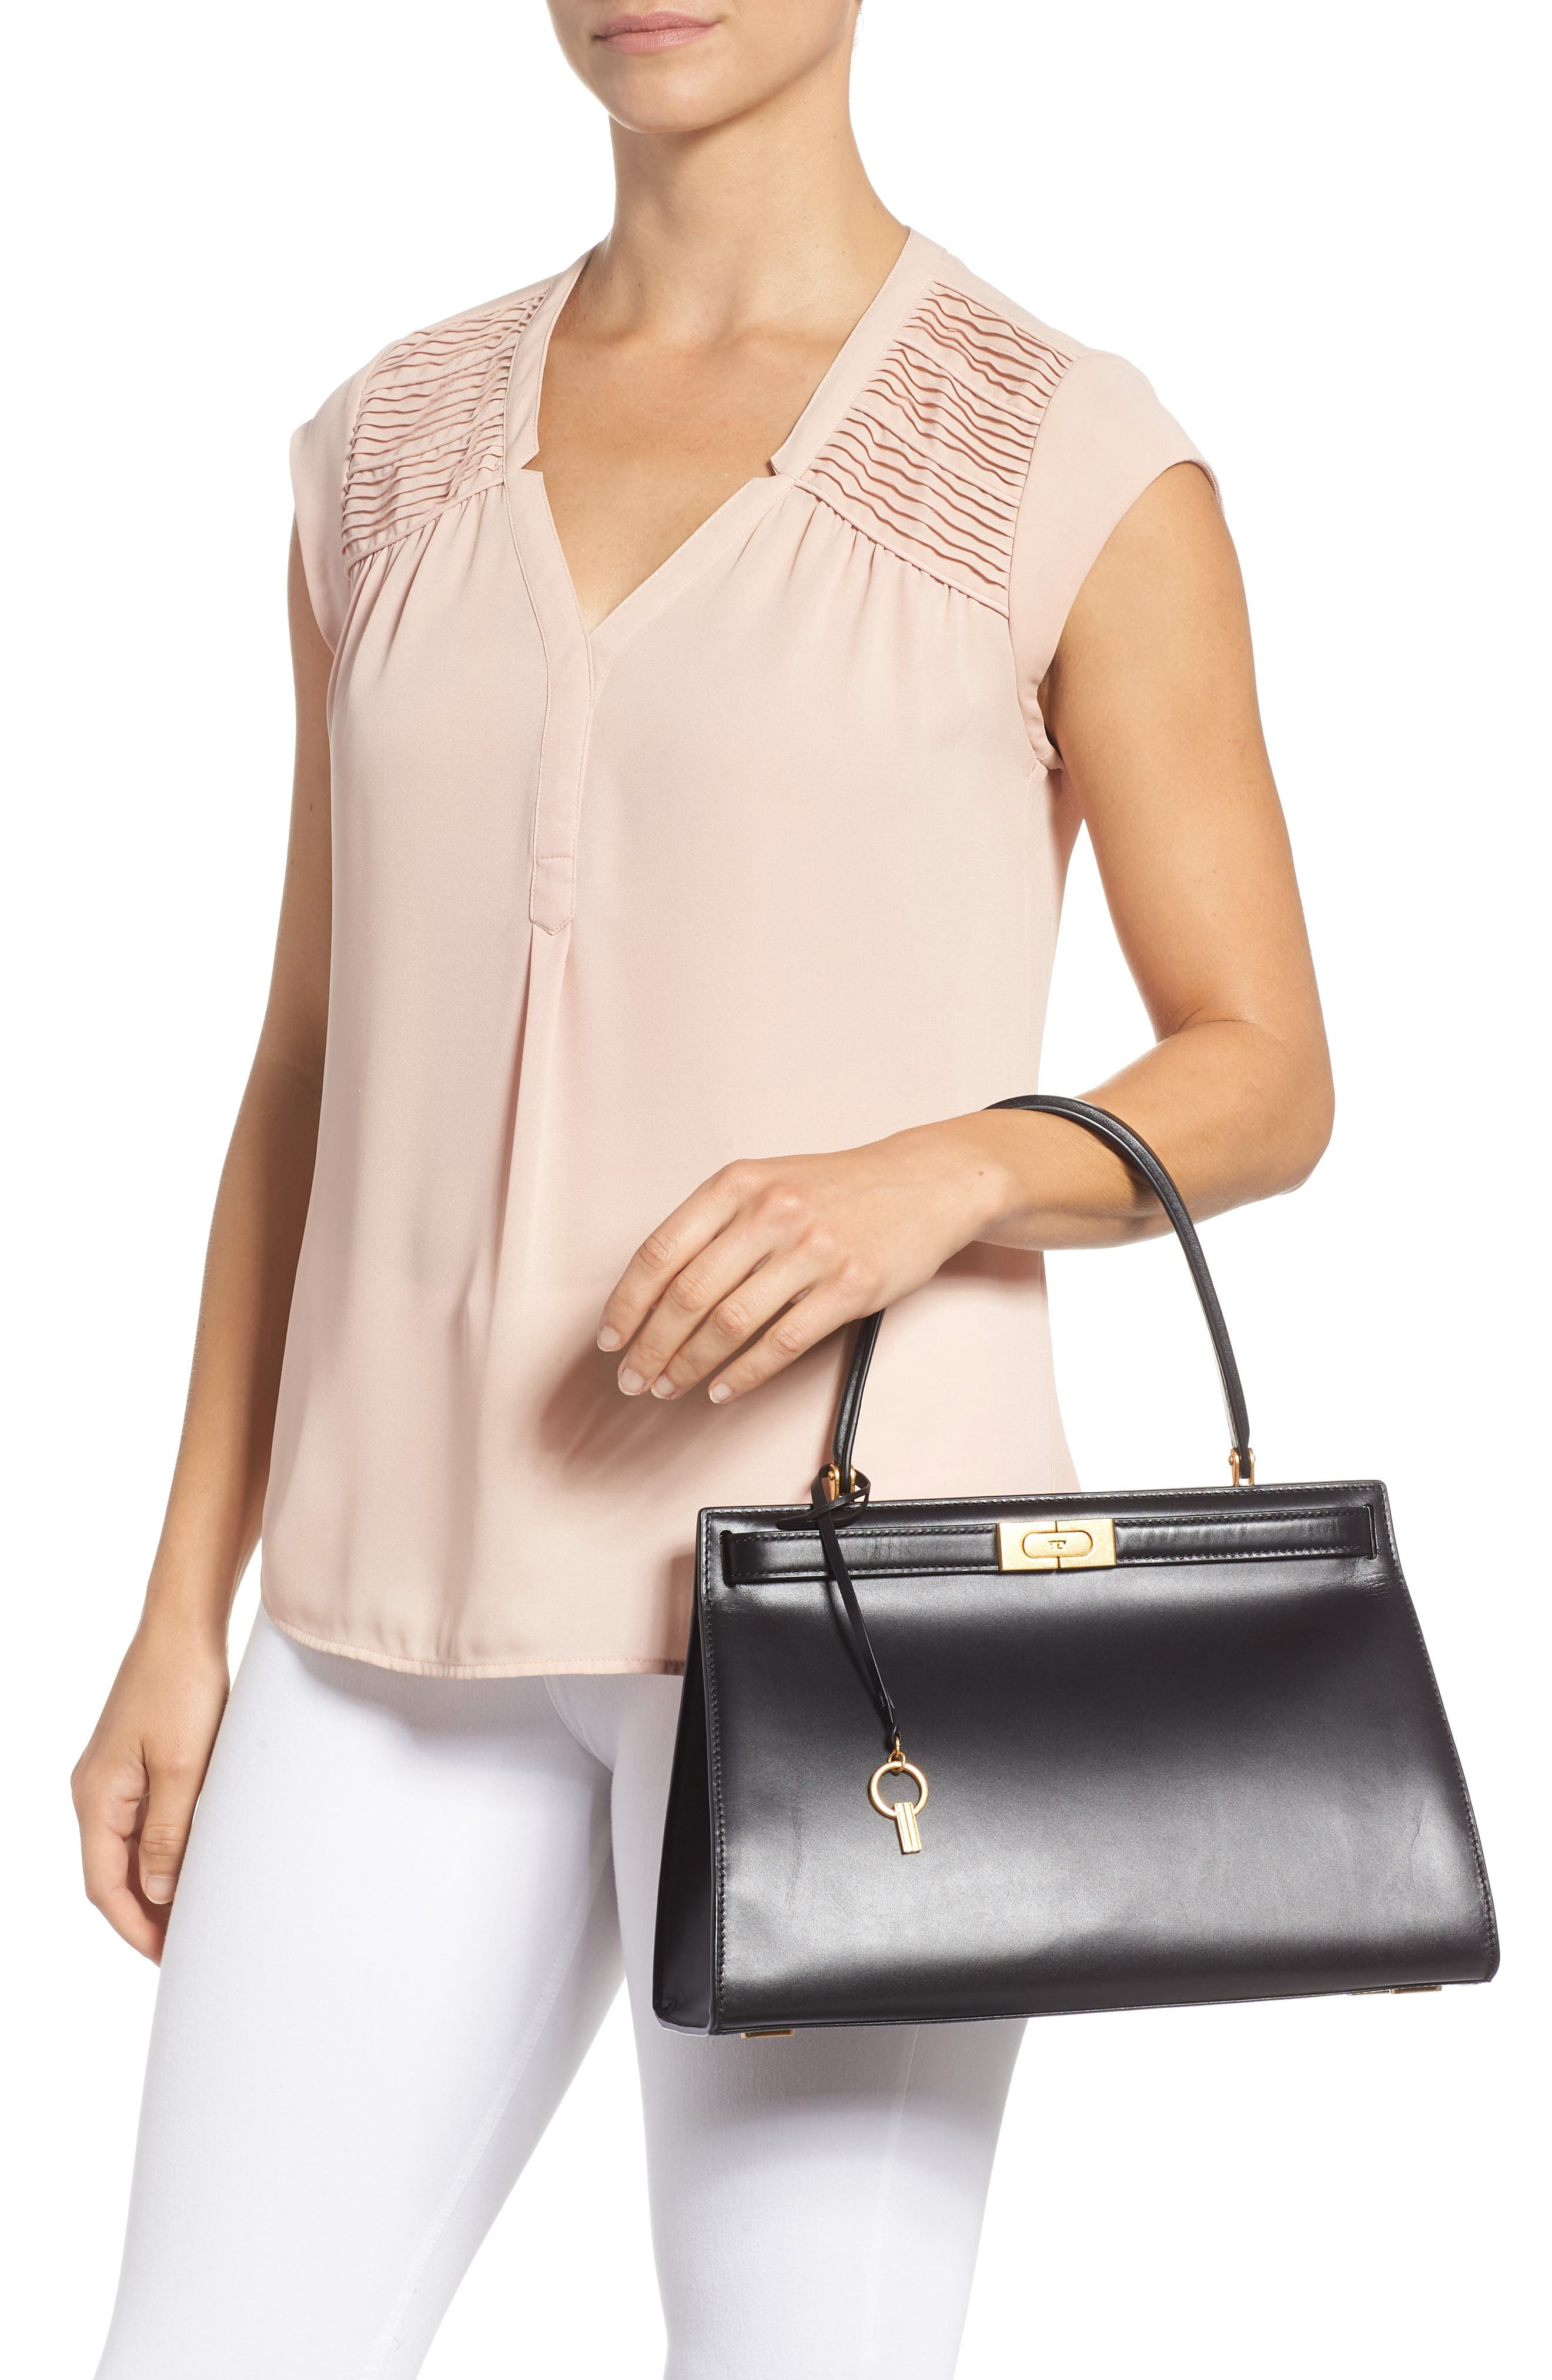 TORY BURCH, Lee Radziwill Leather Bag, Alternate thumbnail 2, color, 001